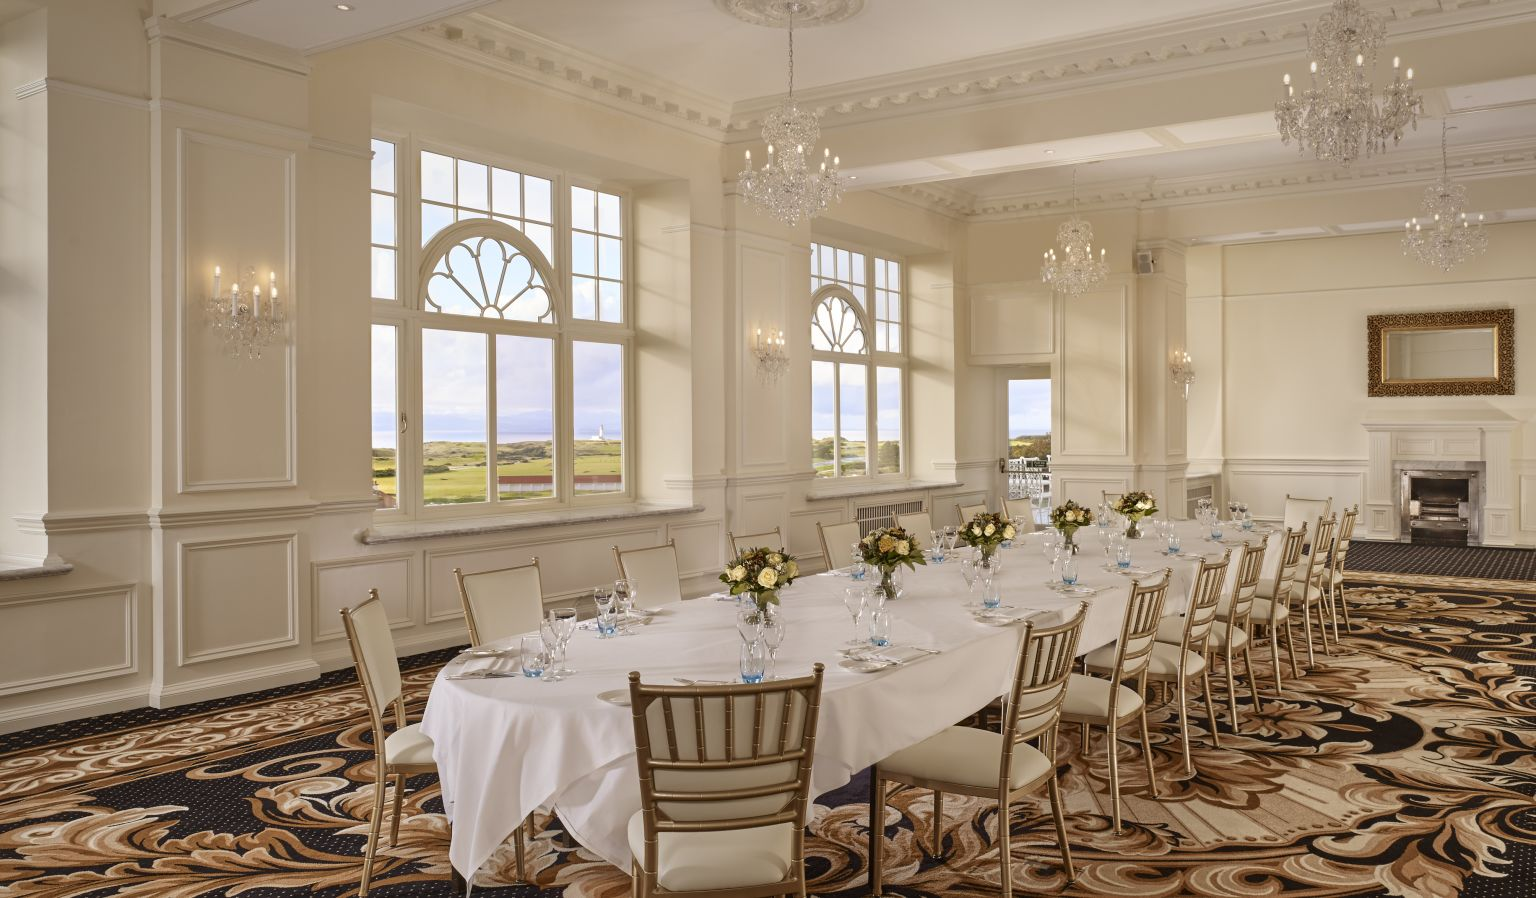 Event Venue with Dining Table